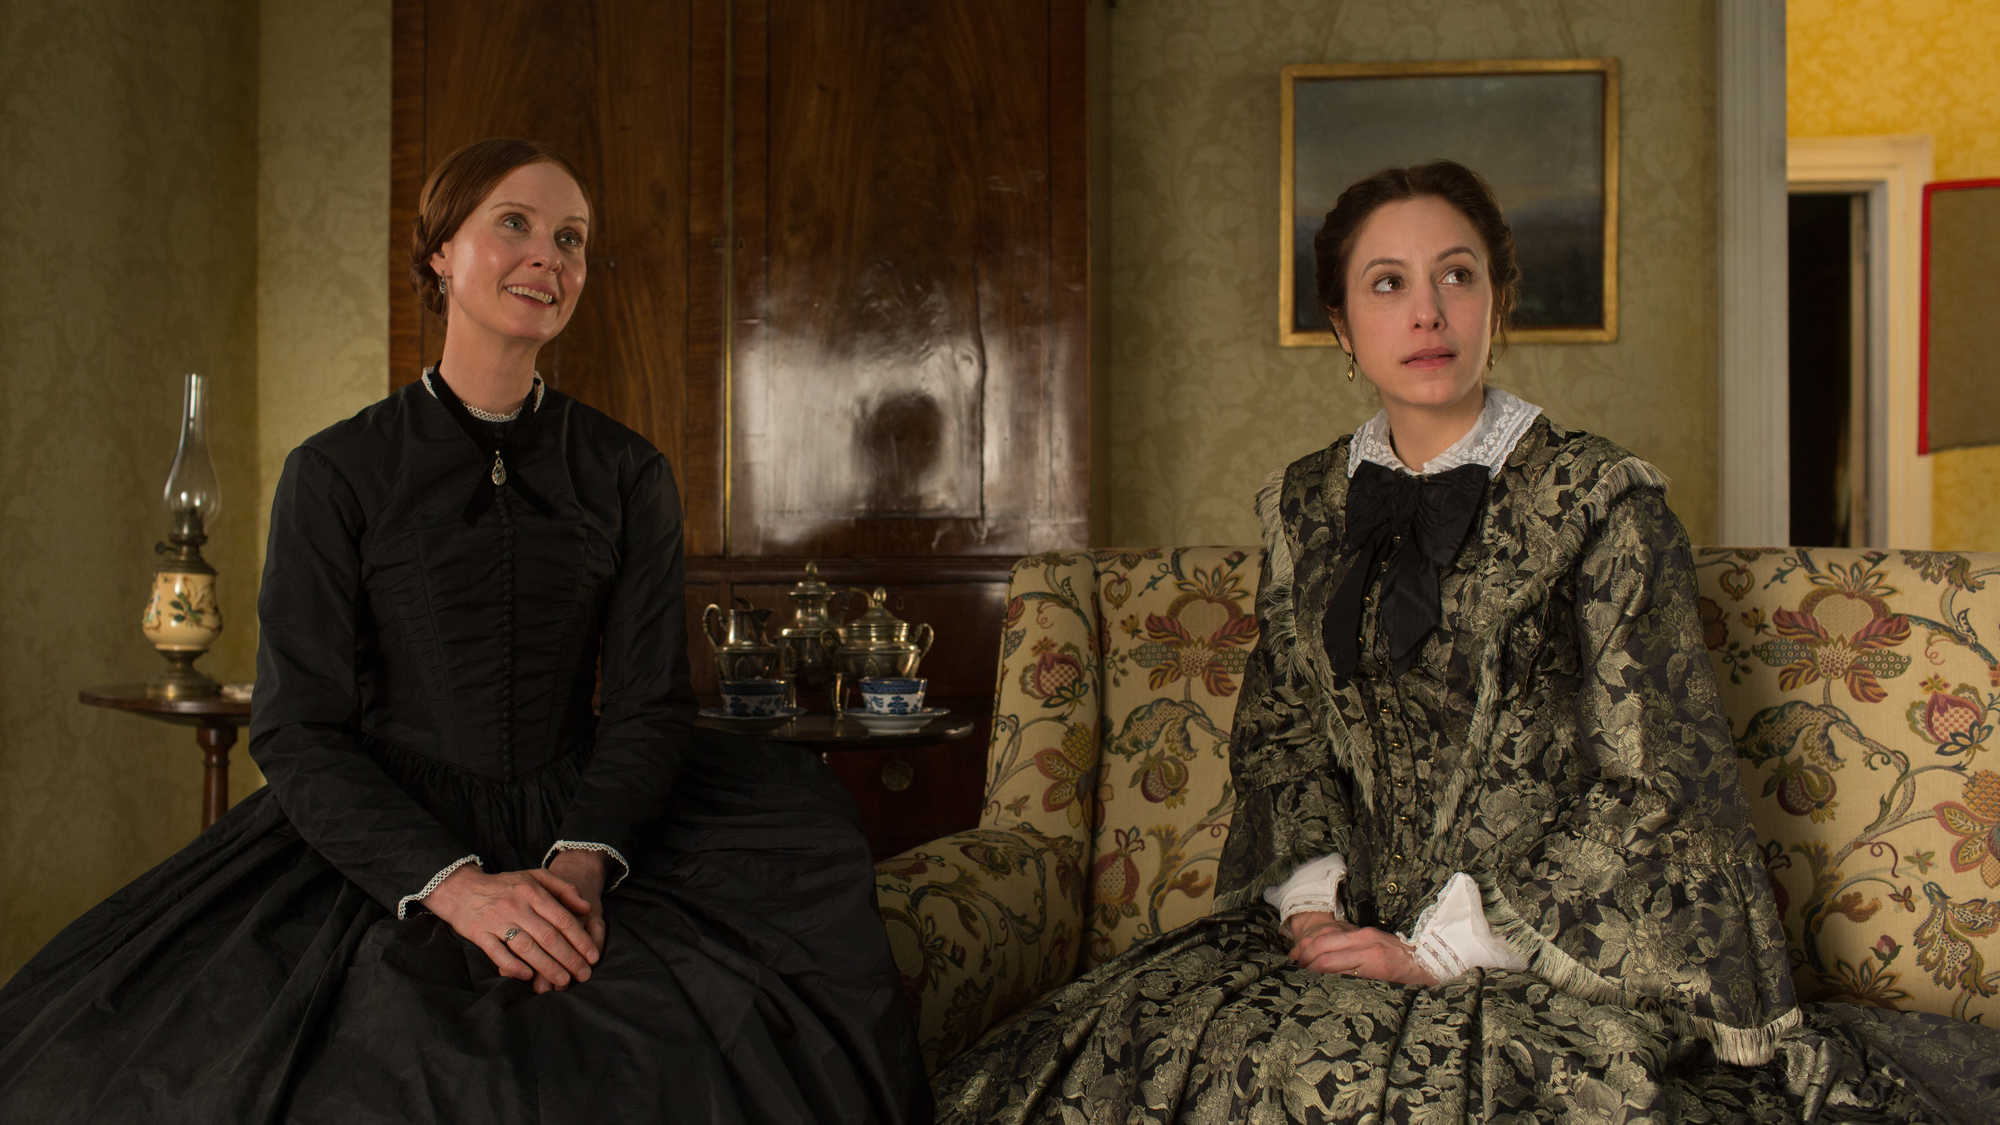 A Quiet Passion (image 4)